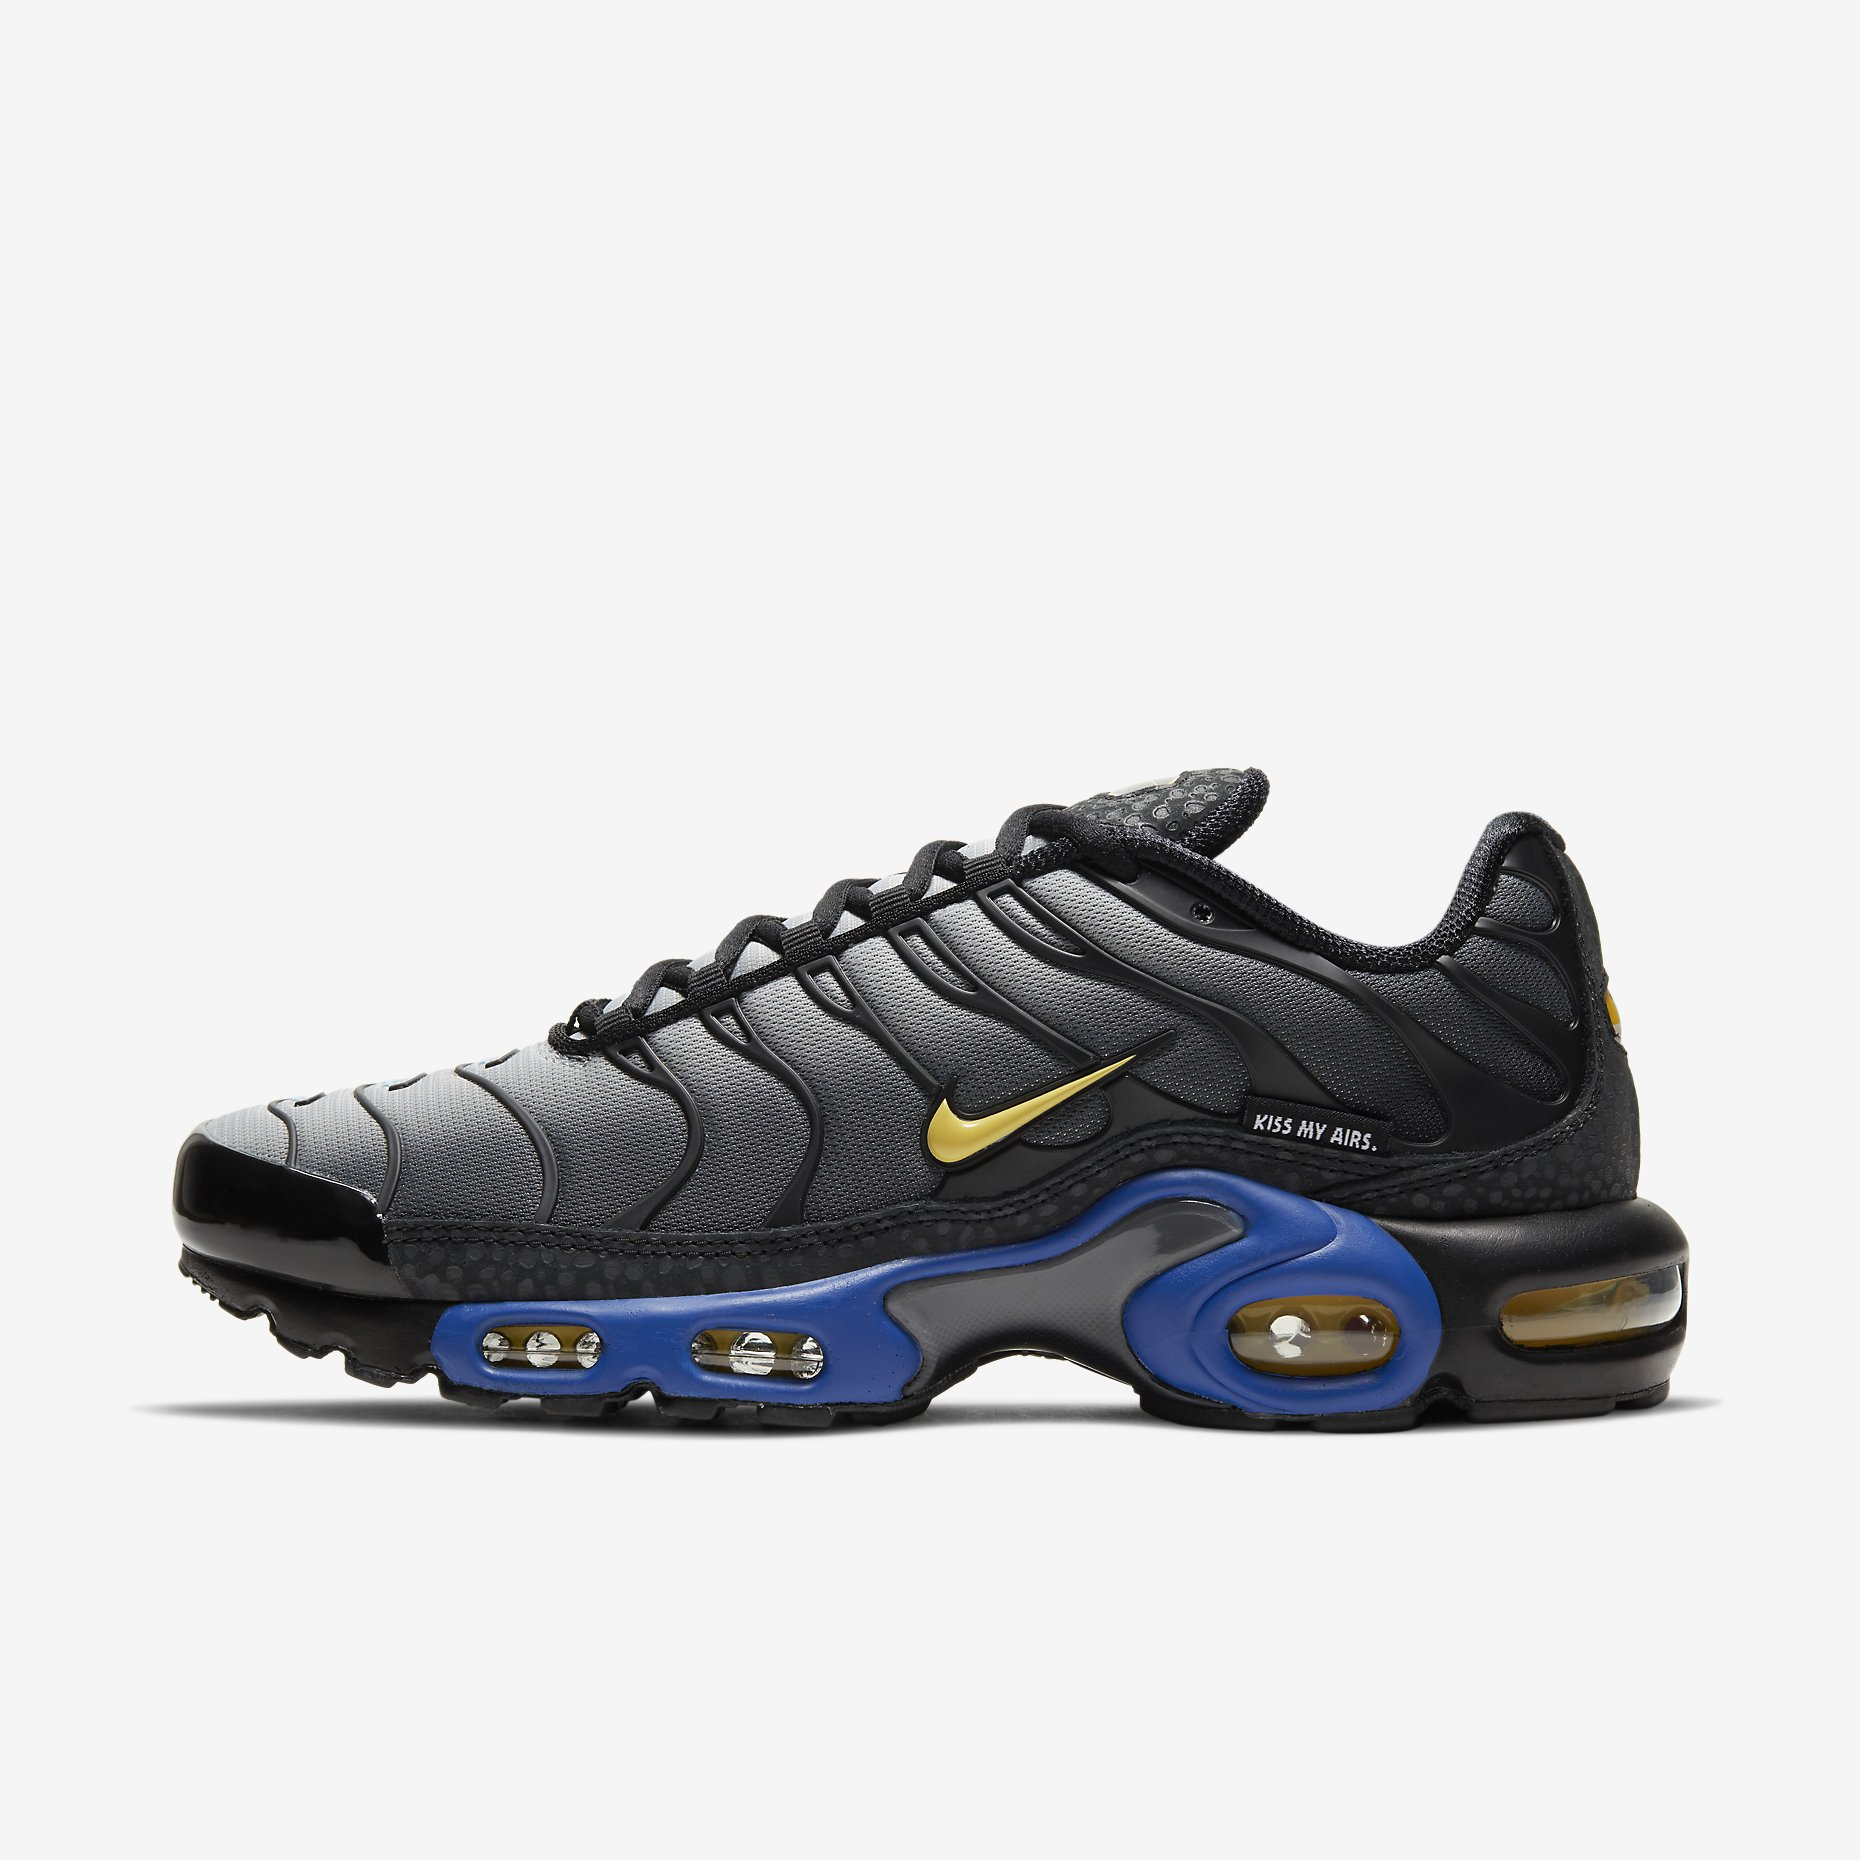 Nike Air Max Plus 'Kiss My Airs'}